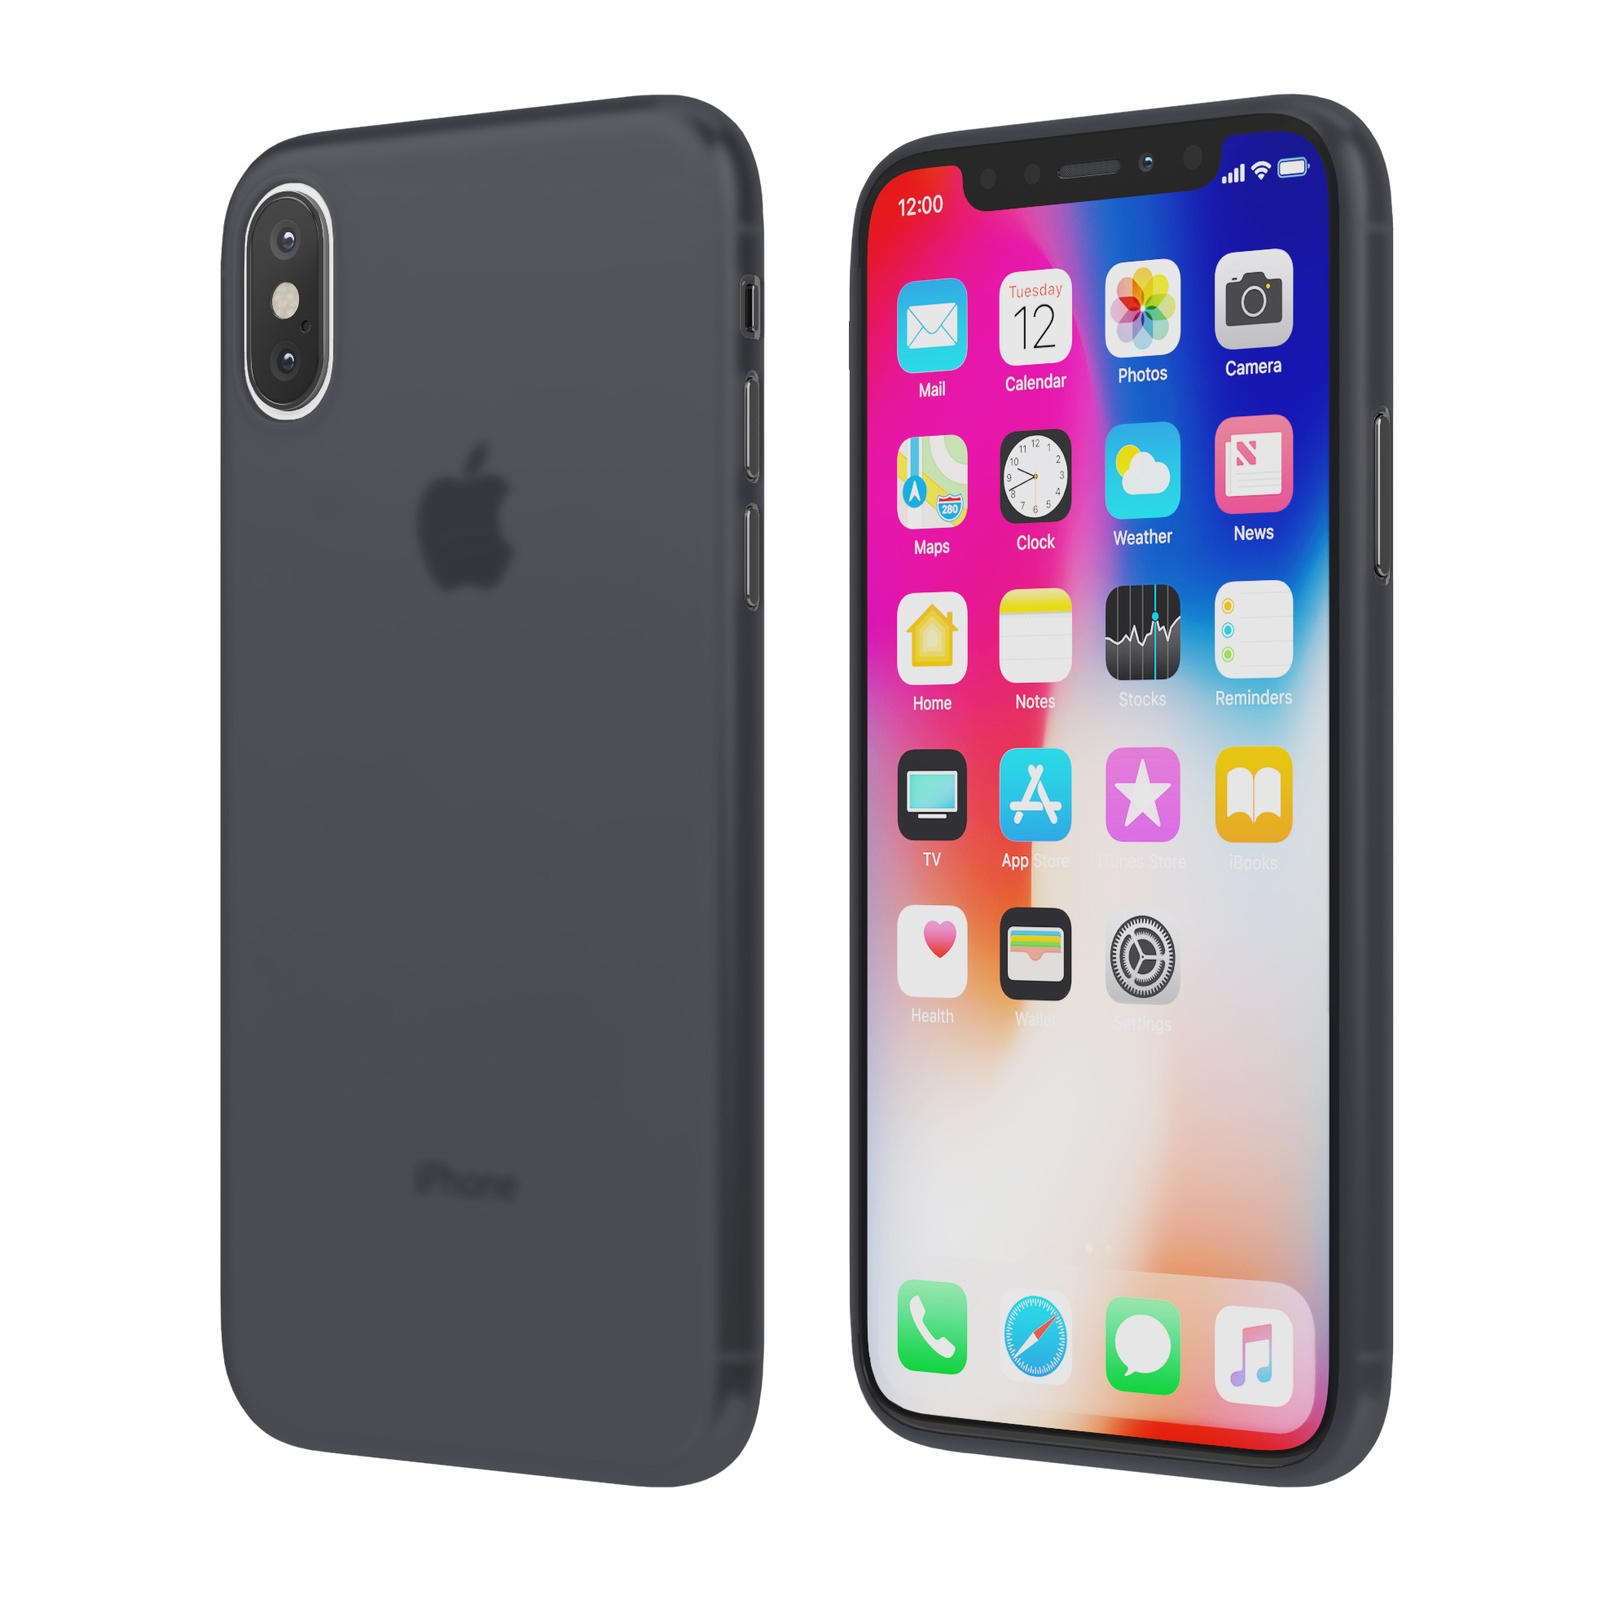 Чехол Vipe Flex для Apple iPhone X, 644-VPIPXFLEXDG, темно-серый чехол vipe flex для apple iphone x 644 vpipxflexred красный